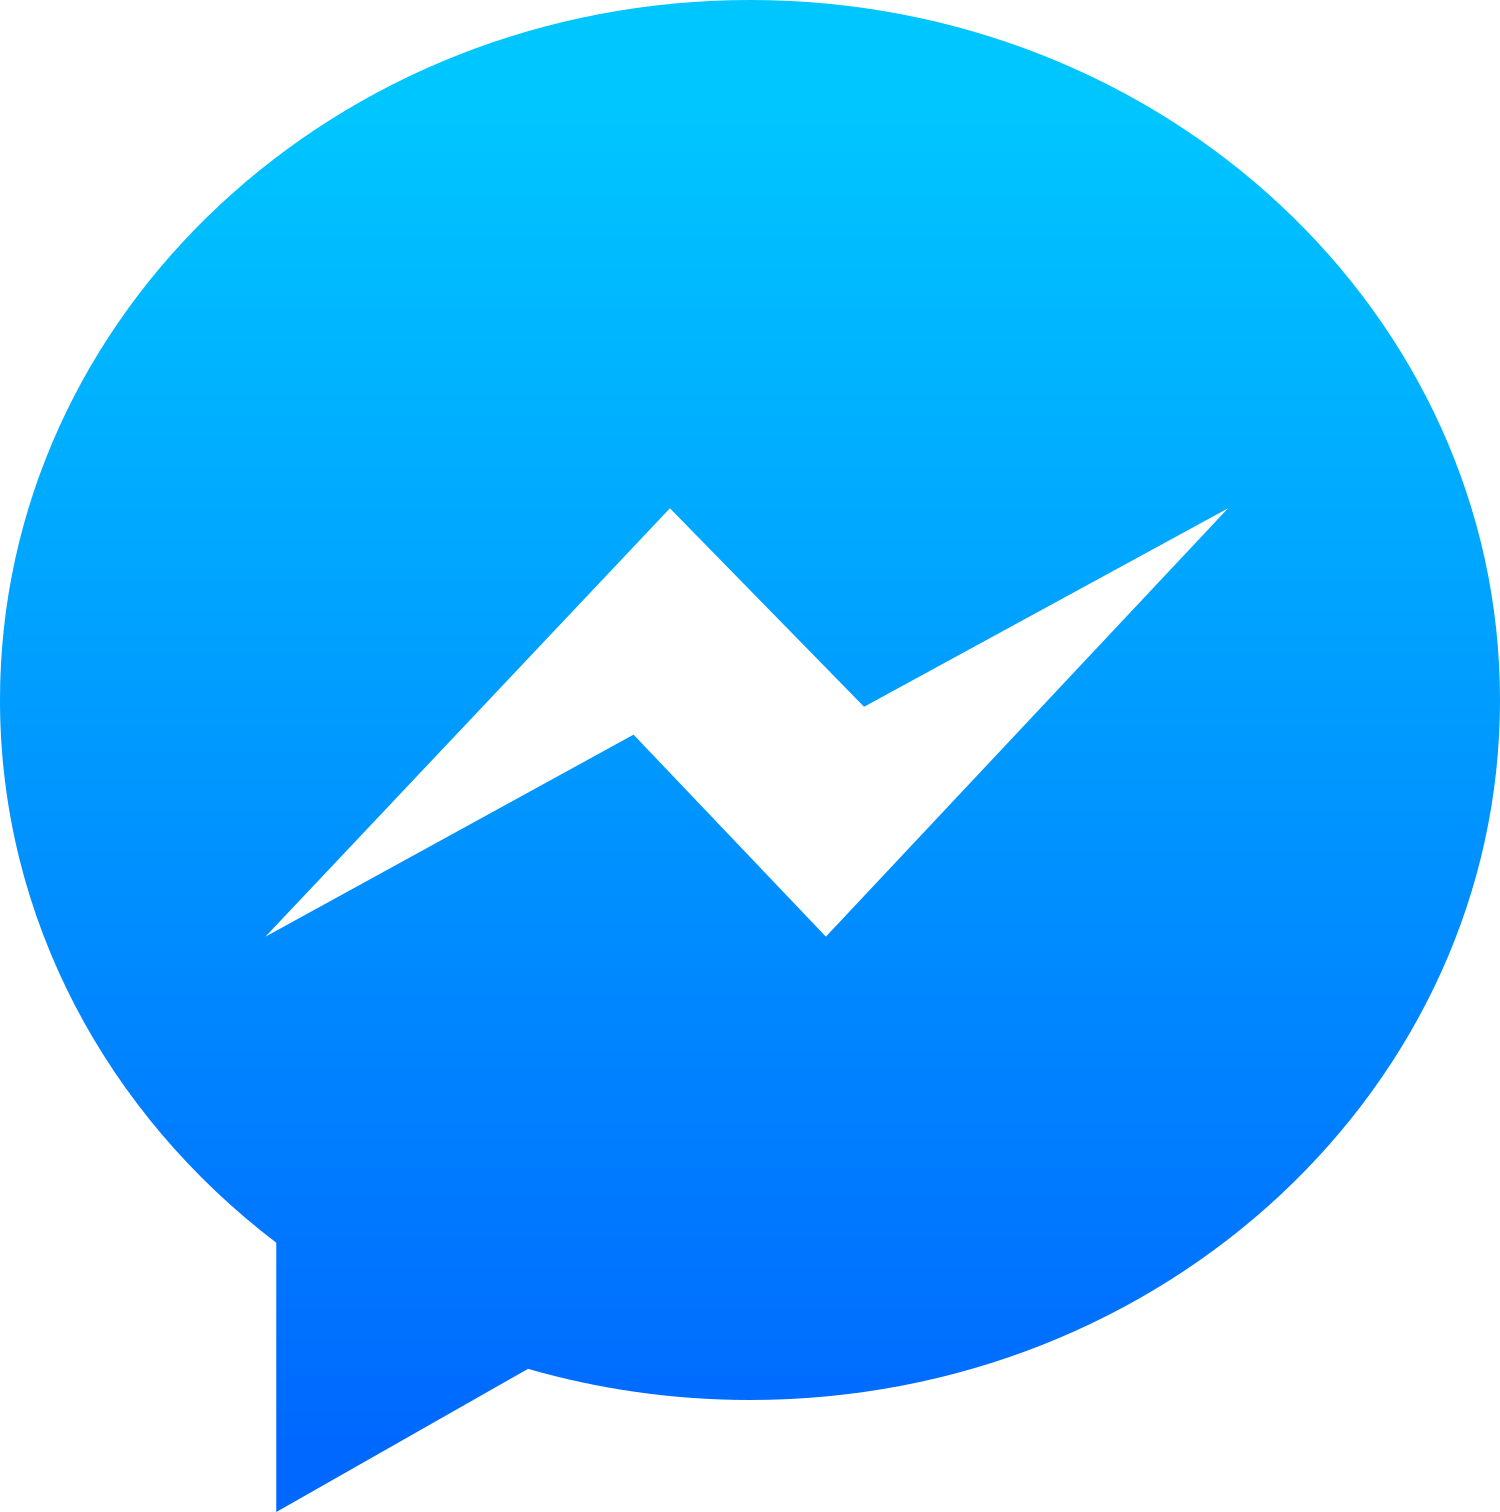 facebook messenger logo.